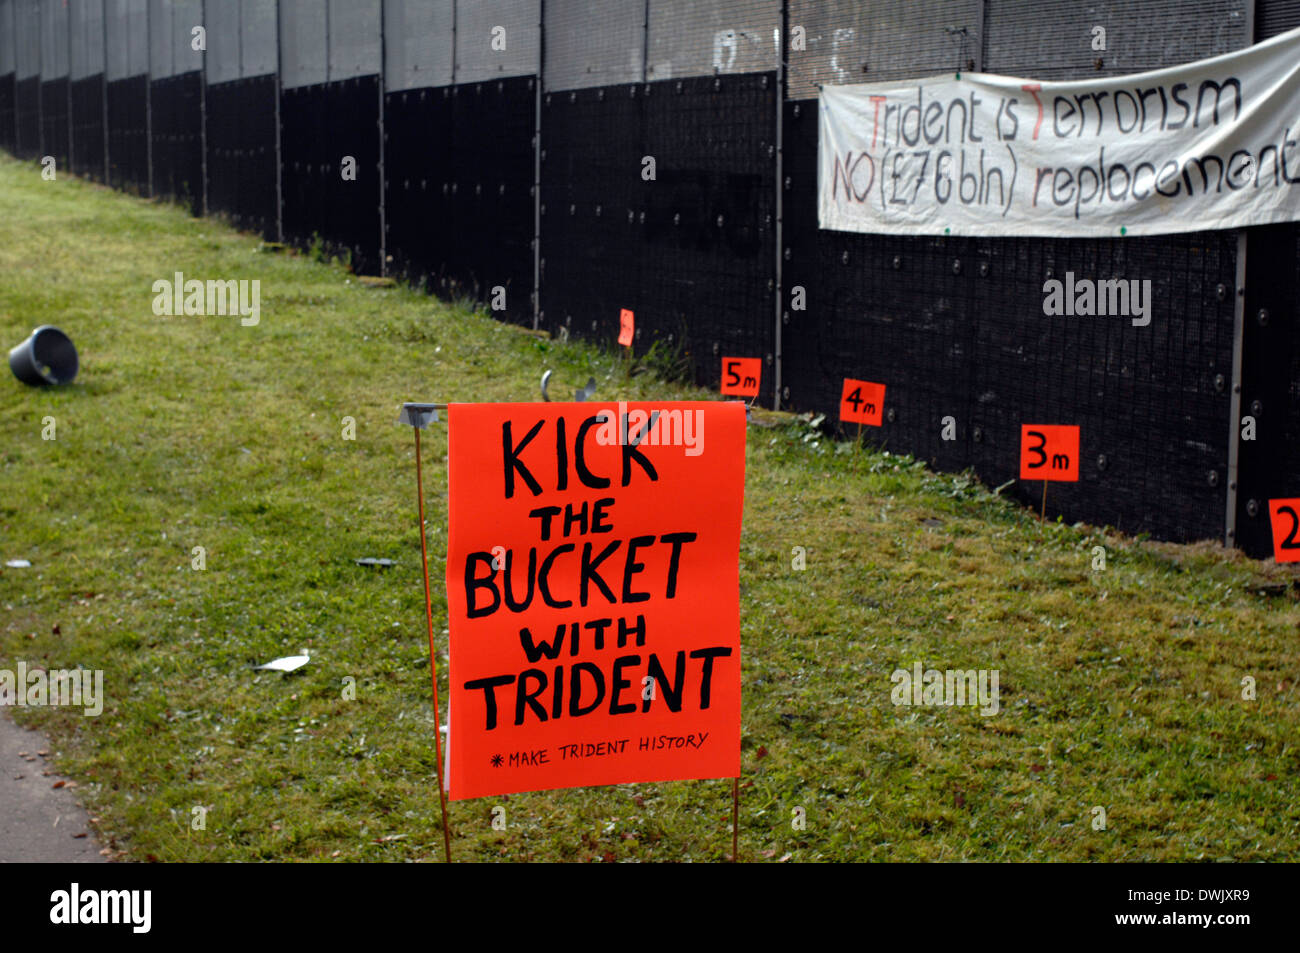 Faslane365 1st October 2007, a one year continuous peaceful blockade of the Trident base - Stock Image